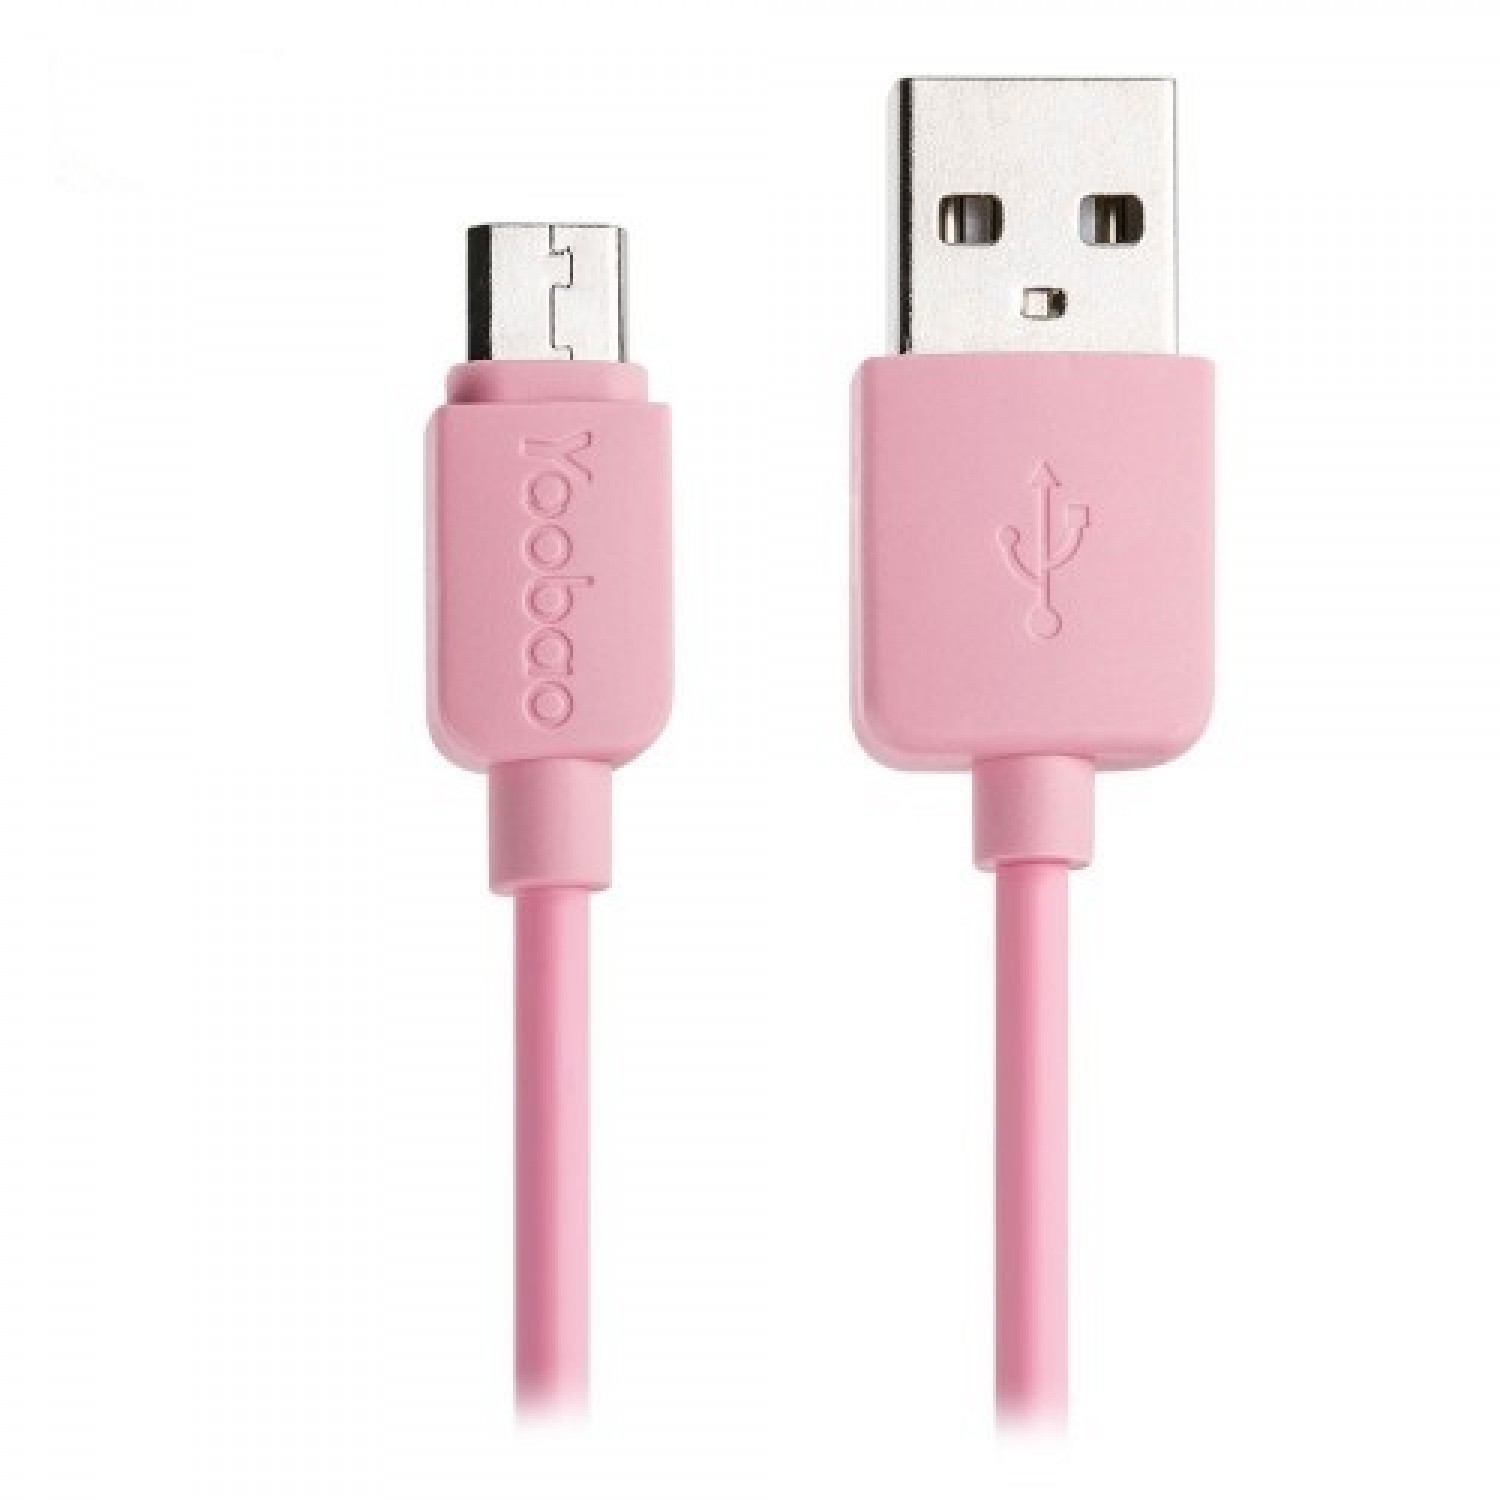 Yoobao YB 411 Micro USB cable 100cm For Android - Mobile Cable